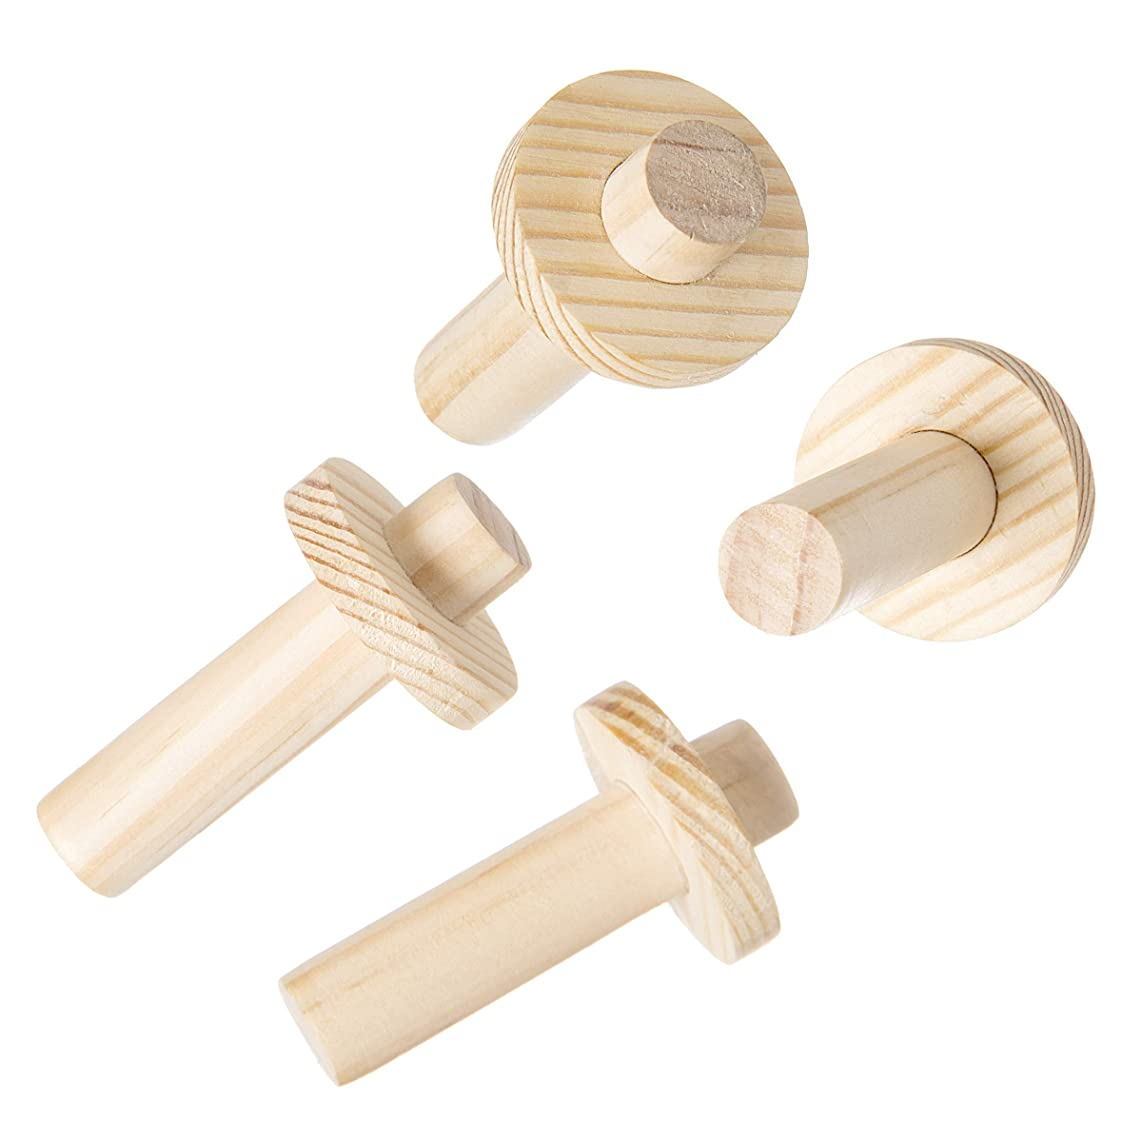 Darice 30053065 System: Wooden Pegboard Dowels, 1.25 x 2.75 Inches, 4 Pieces, Unfinished/Natural